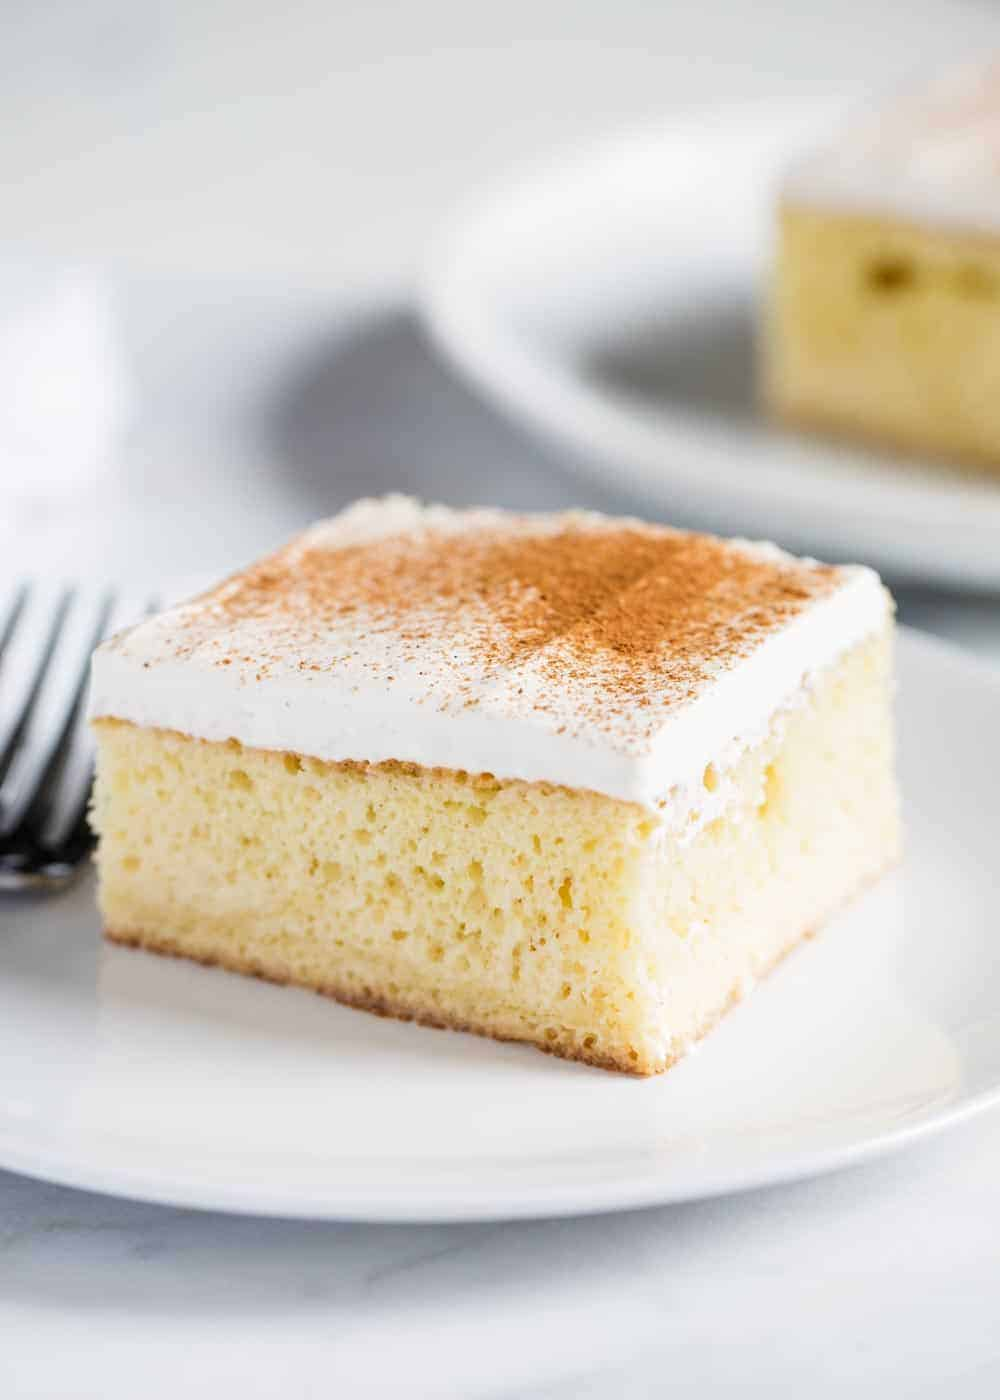 Easy Tres Leches Cake Recipe I Heart Naptime